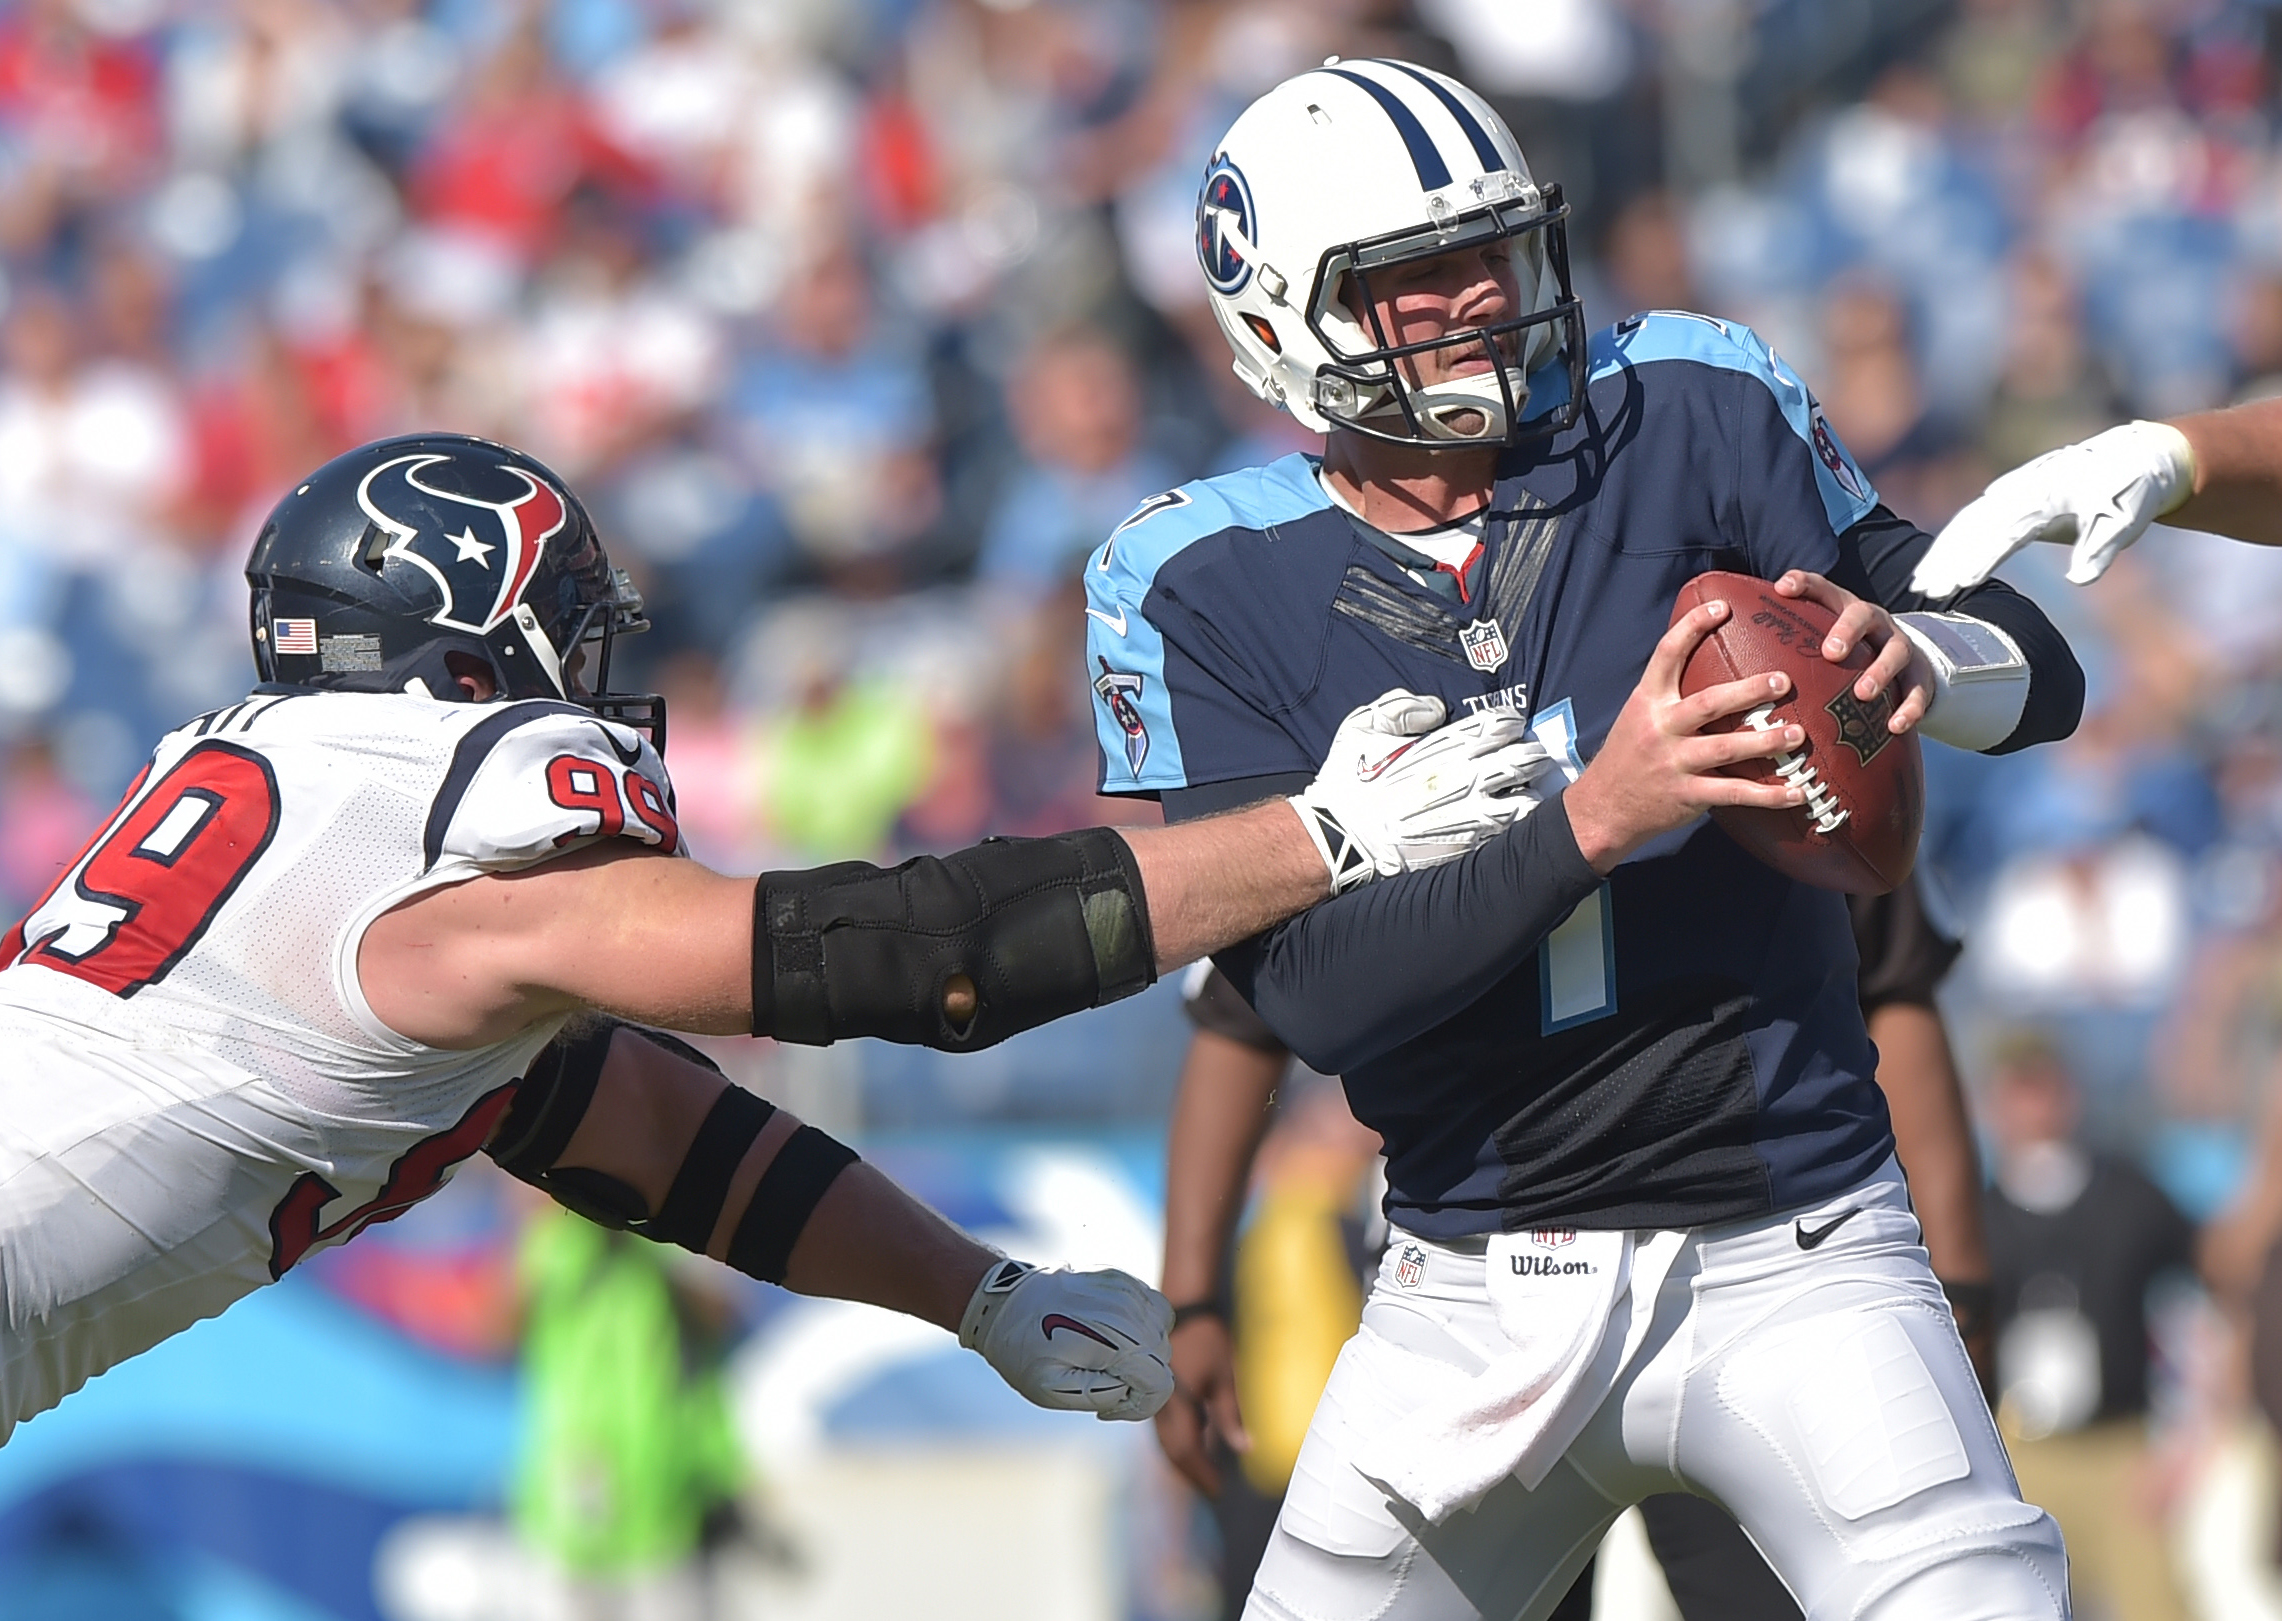 I tried to find a picture of Mett playing the Texans and NOT being assaulted by our defense, but the state of his offensive line makes that impossible.